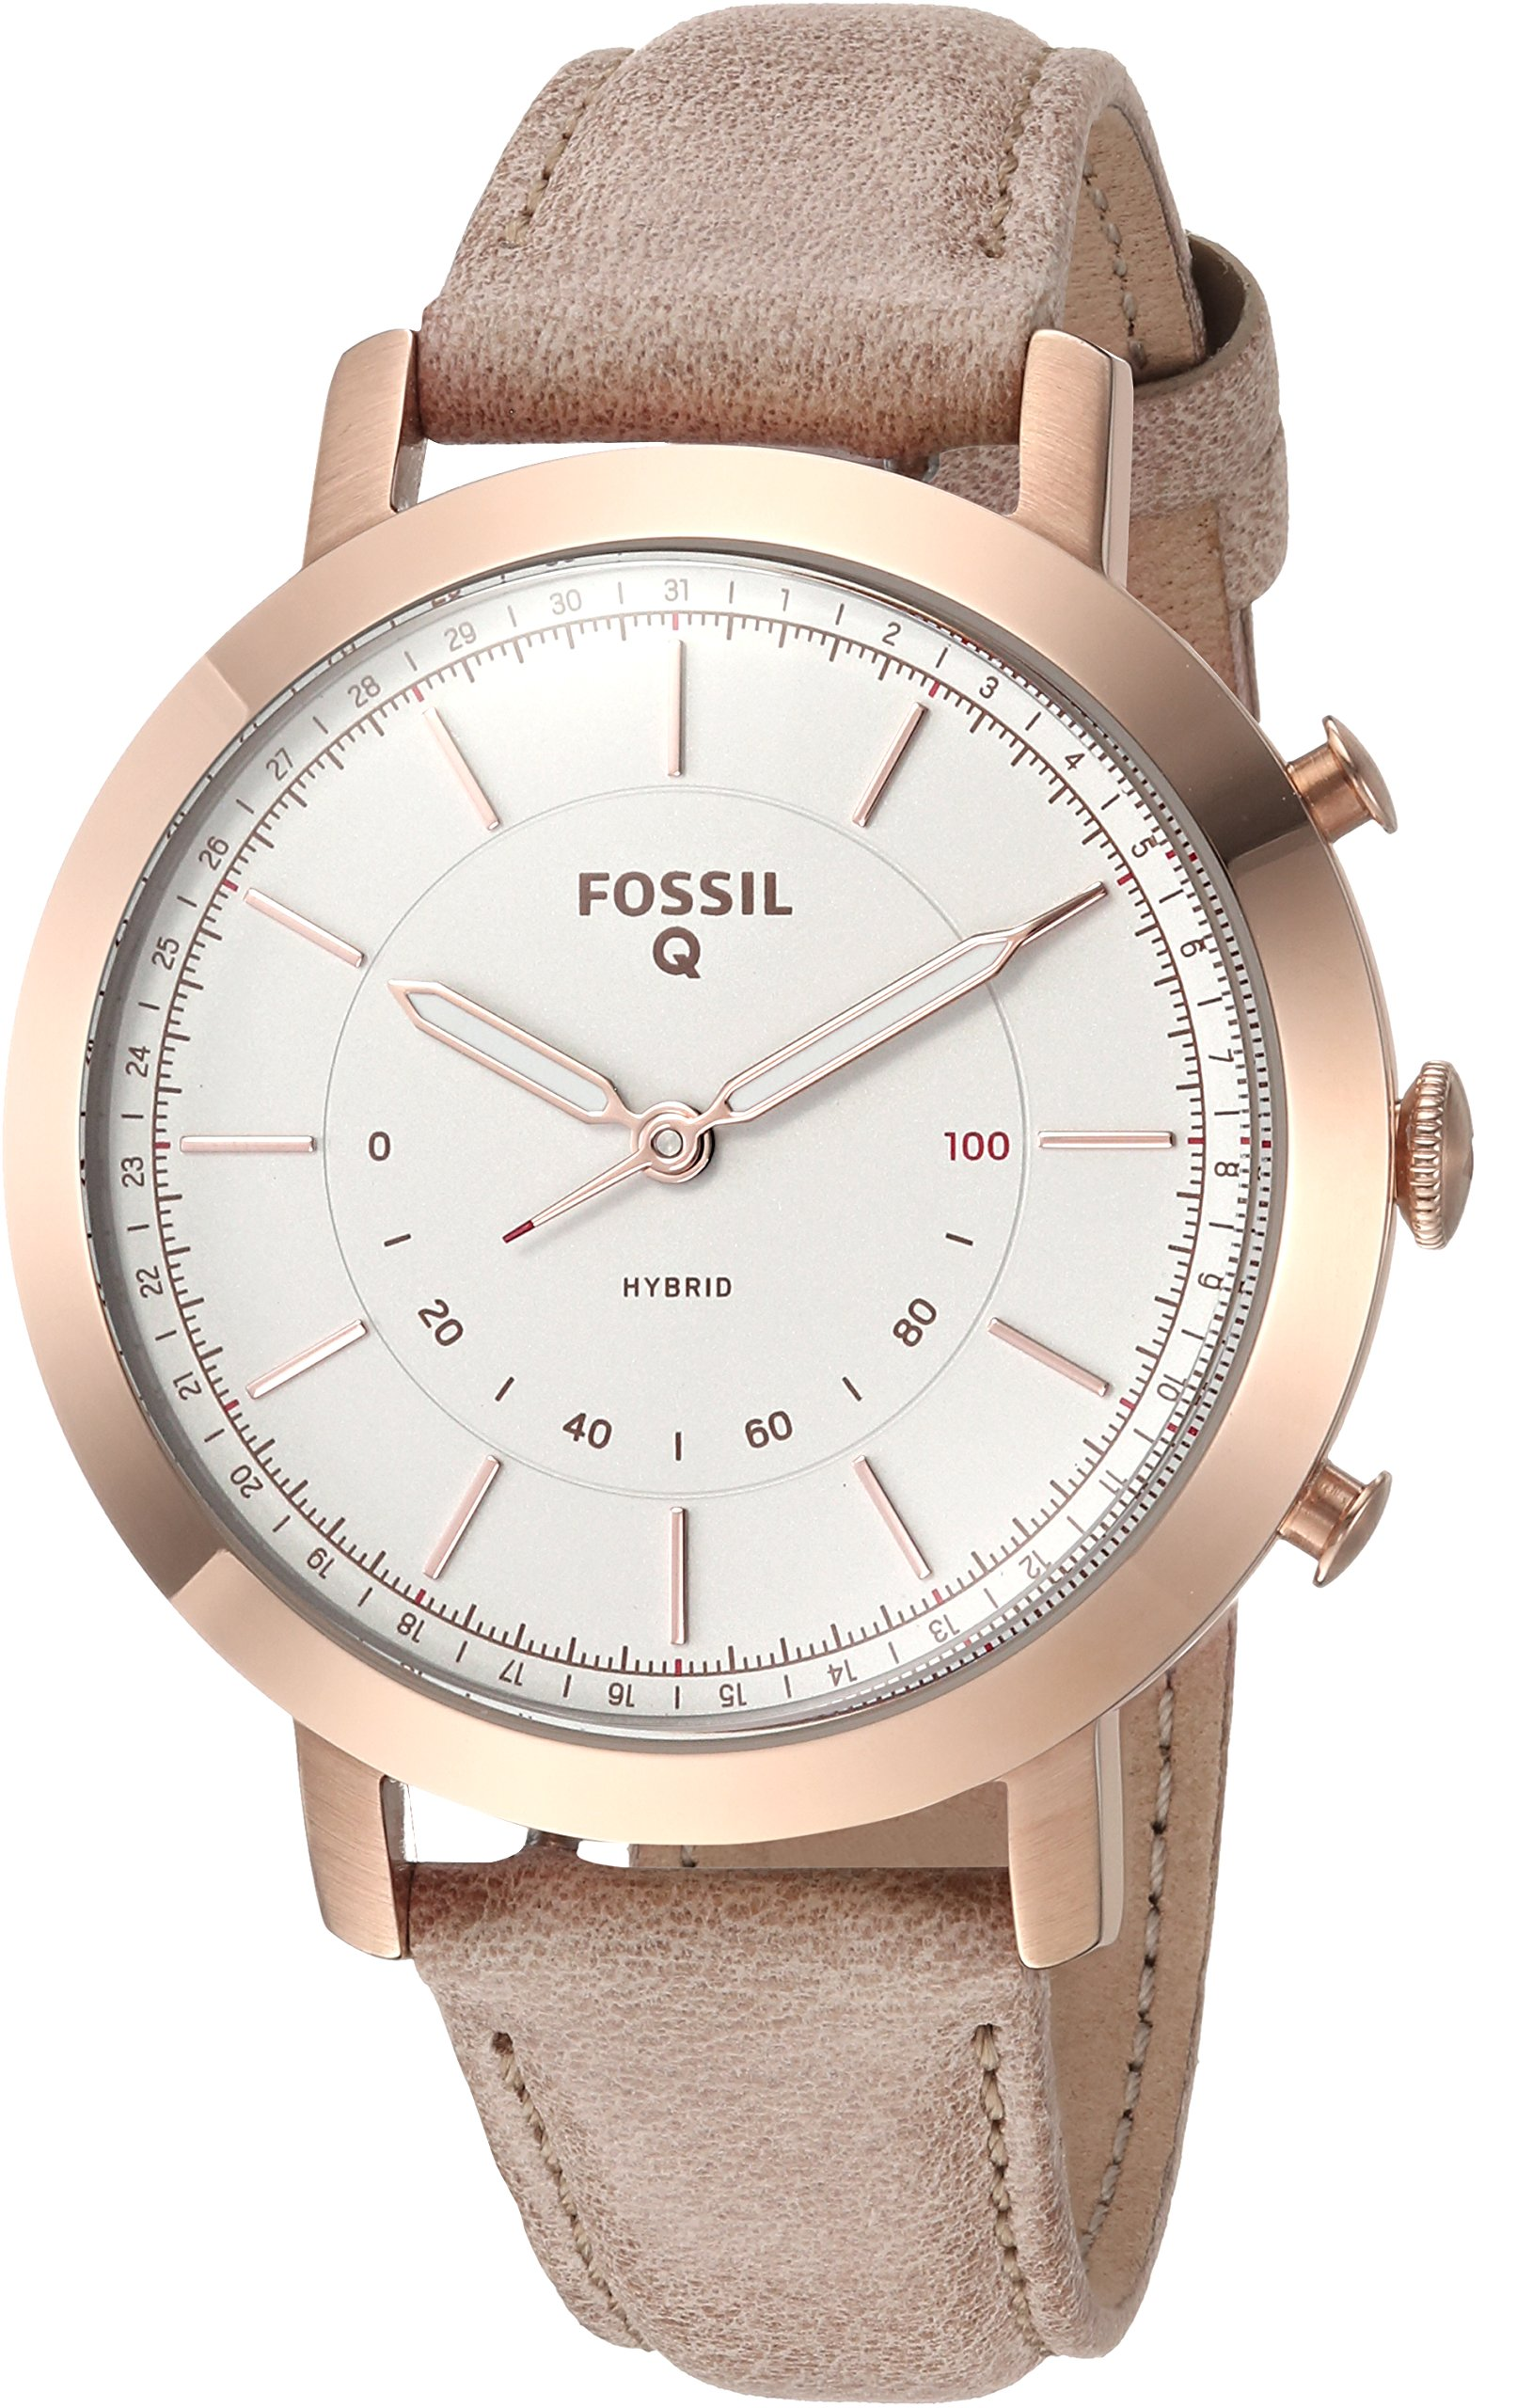 Fossil Hybrid Smartwatch - Q Neely Bone Leather FTW5007